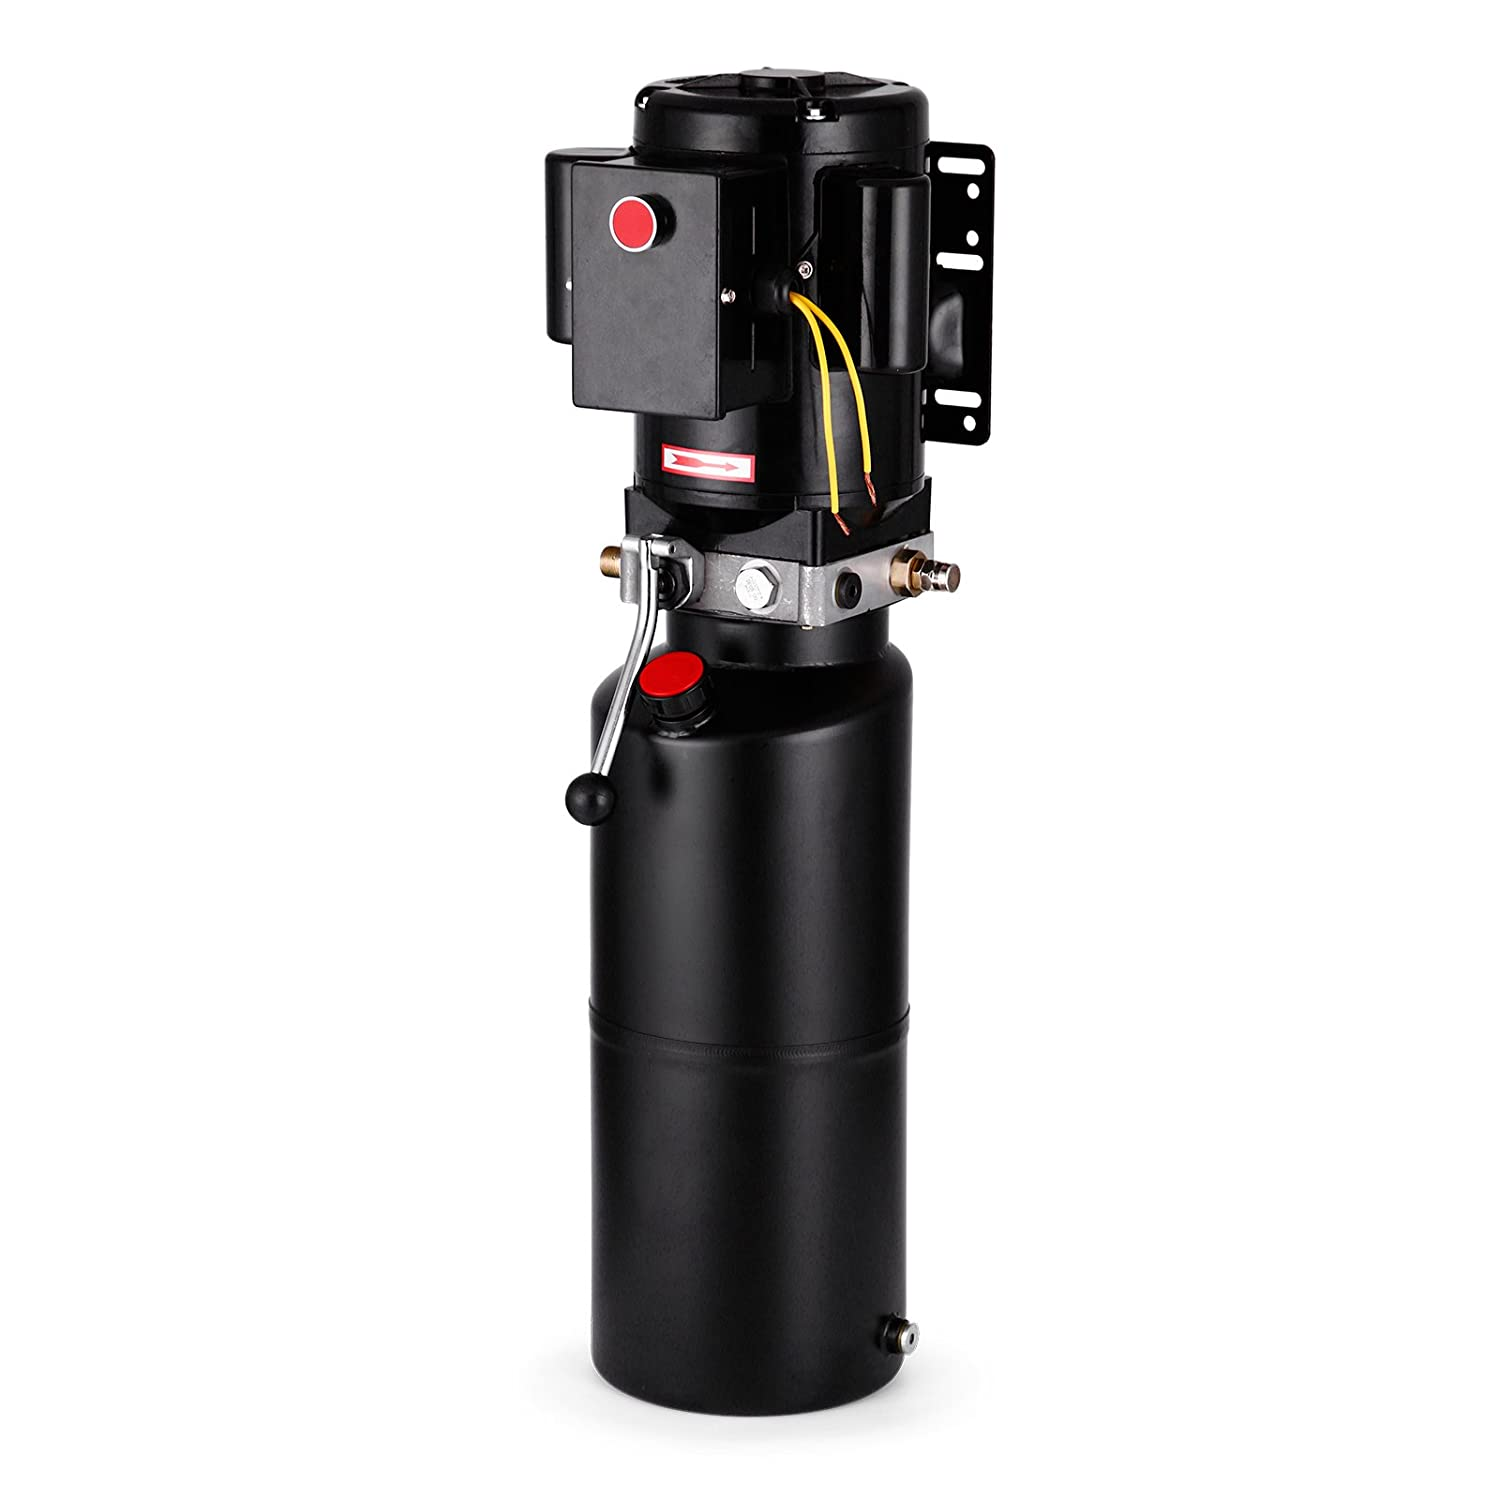 BestEquip Car Lift Power Unit 2.64 Gallons 3 HP Hydraulic Pump Power Unit Auto Car Lift 2950 PSI Car Lift Hydraulic Pumps 220V 2.2 KW Adjustable Pump Pressure